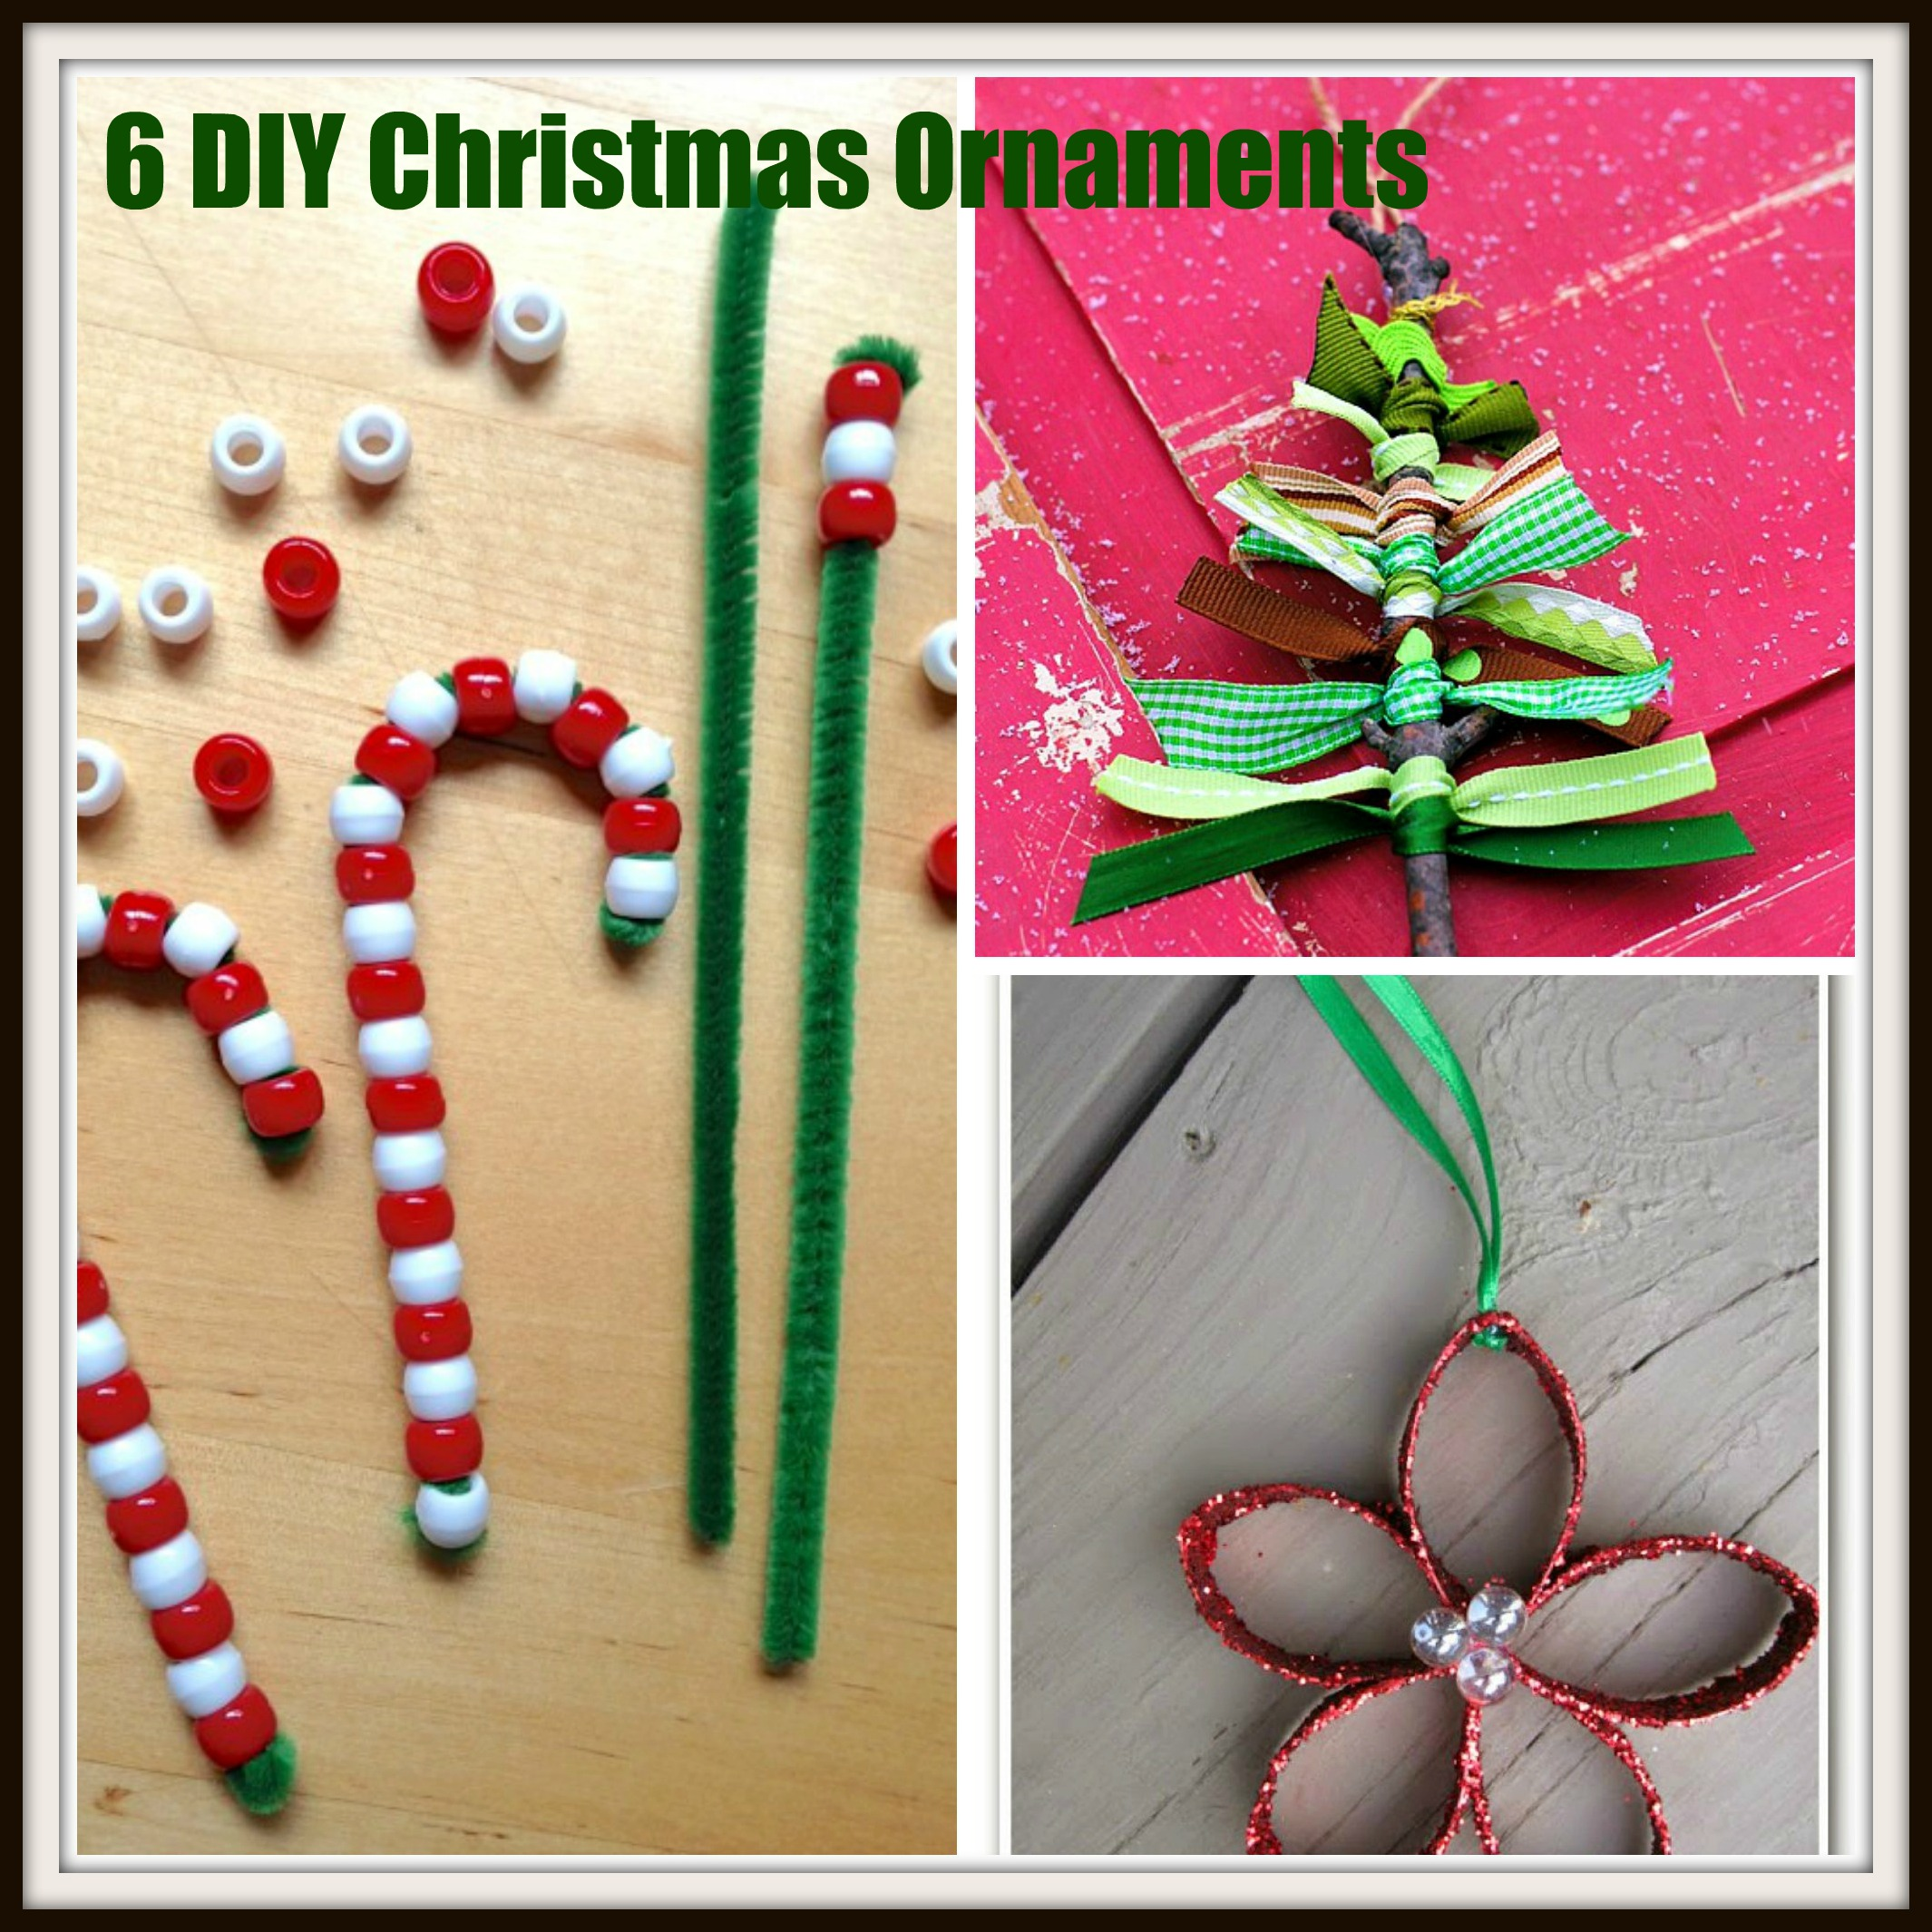 Drama christmas ornaments - 6 Christmas Ornament Crafts To Make With Your Kids